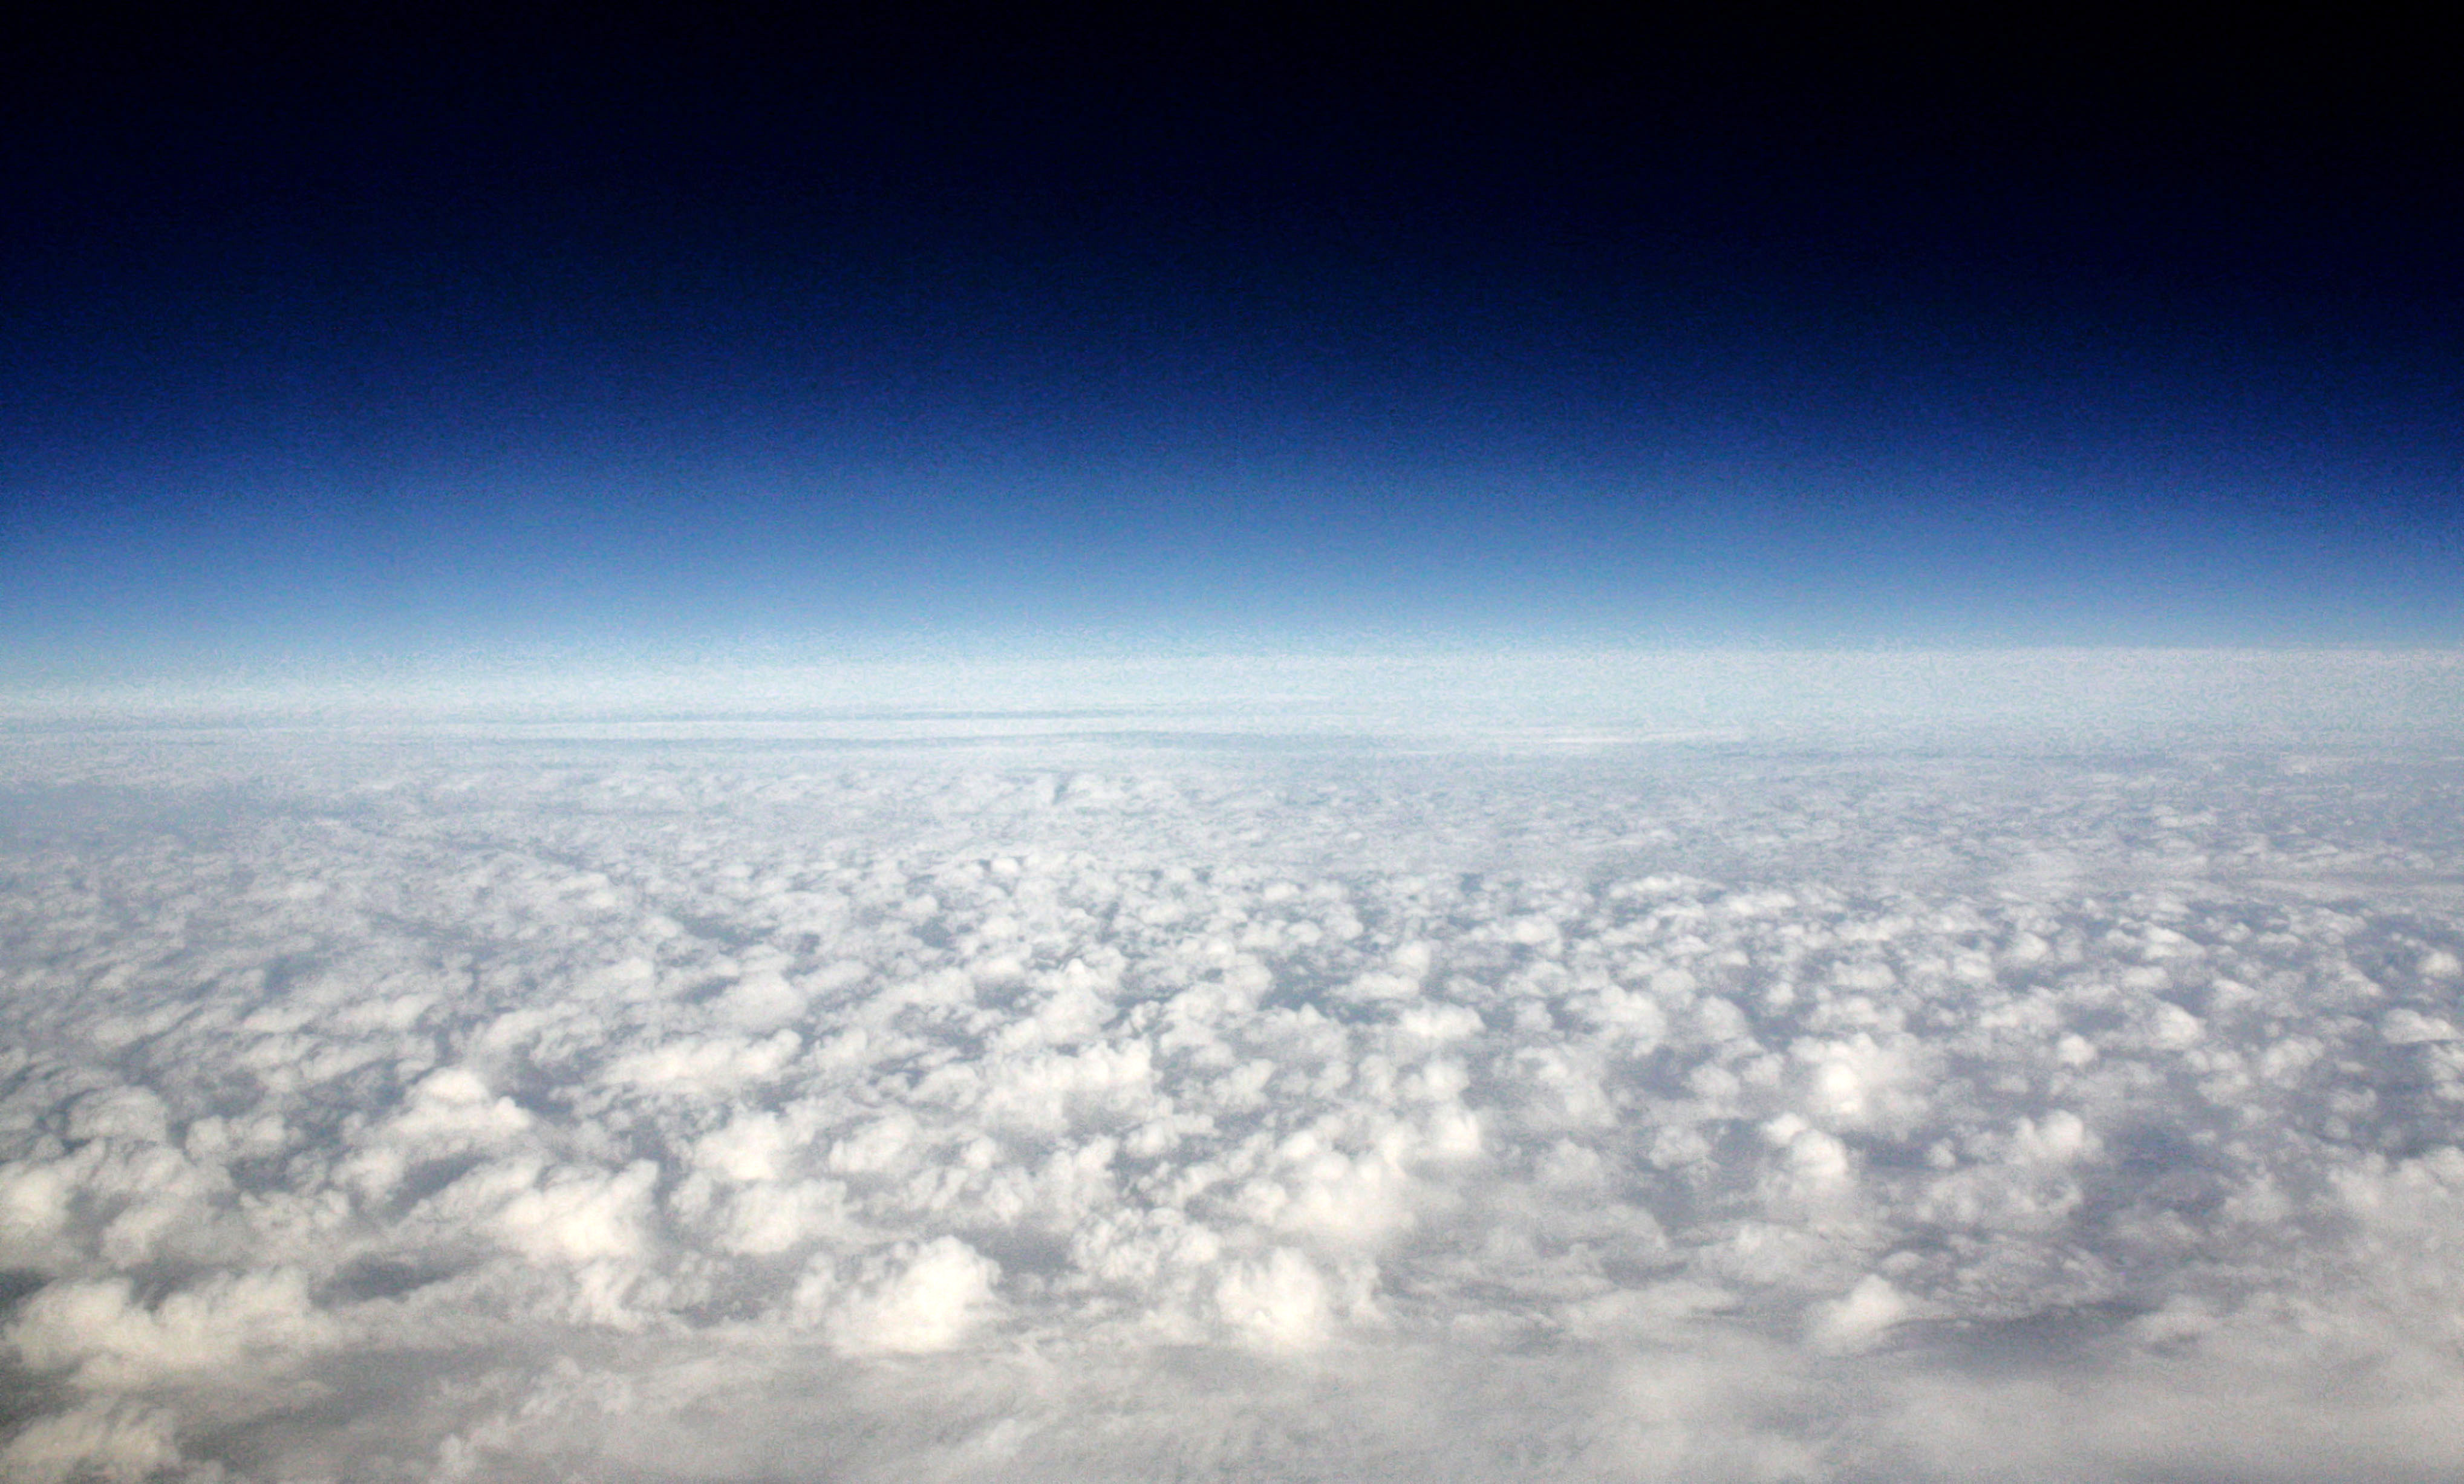 Clouds above the Cloud Sea image - Free stock photo - Public Domain ...